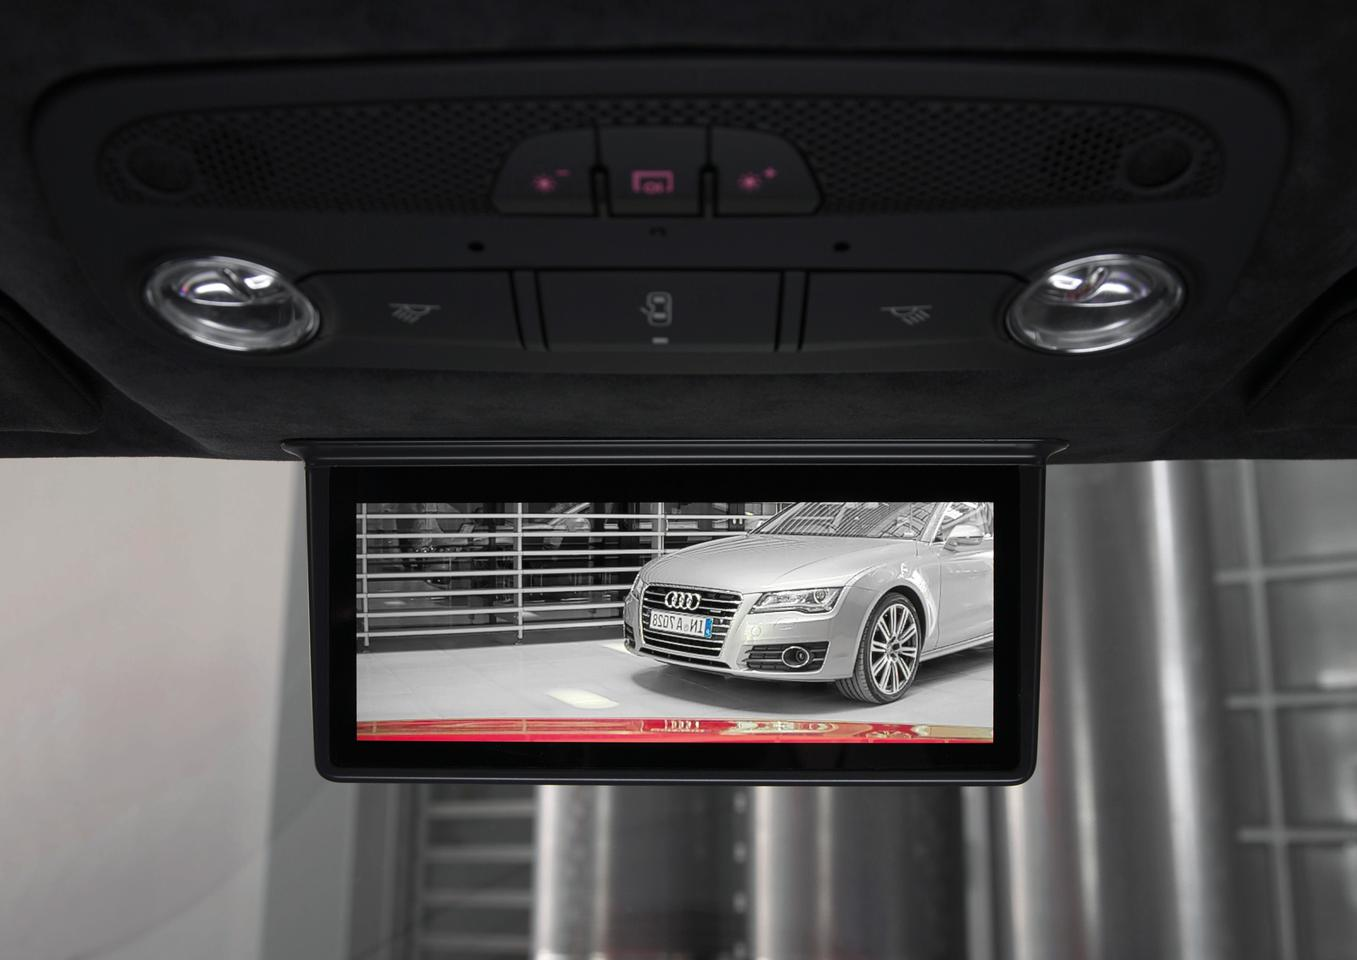 Audi's digital rear-view mirror that will make its production debut in the R8 e-tron